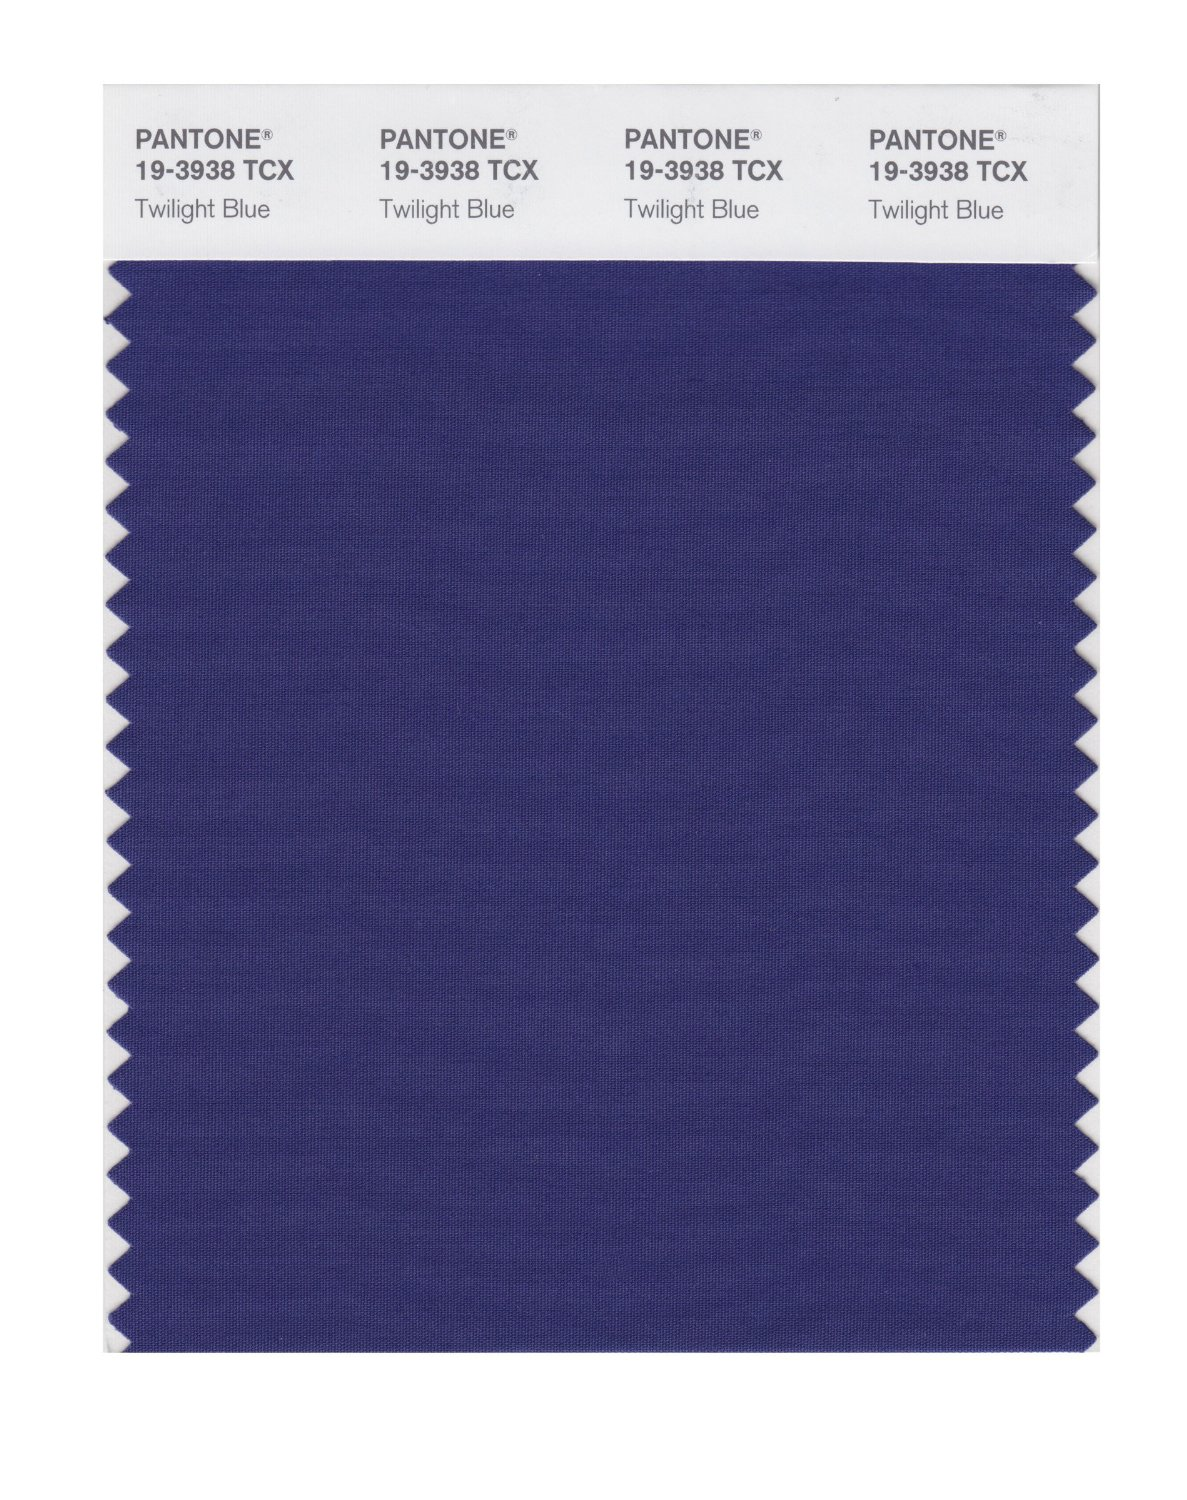 Pantone Smart Swatch 19-3938 Twilight Blue